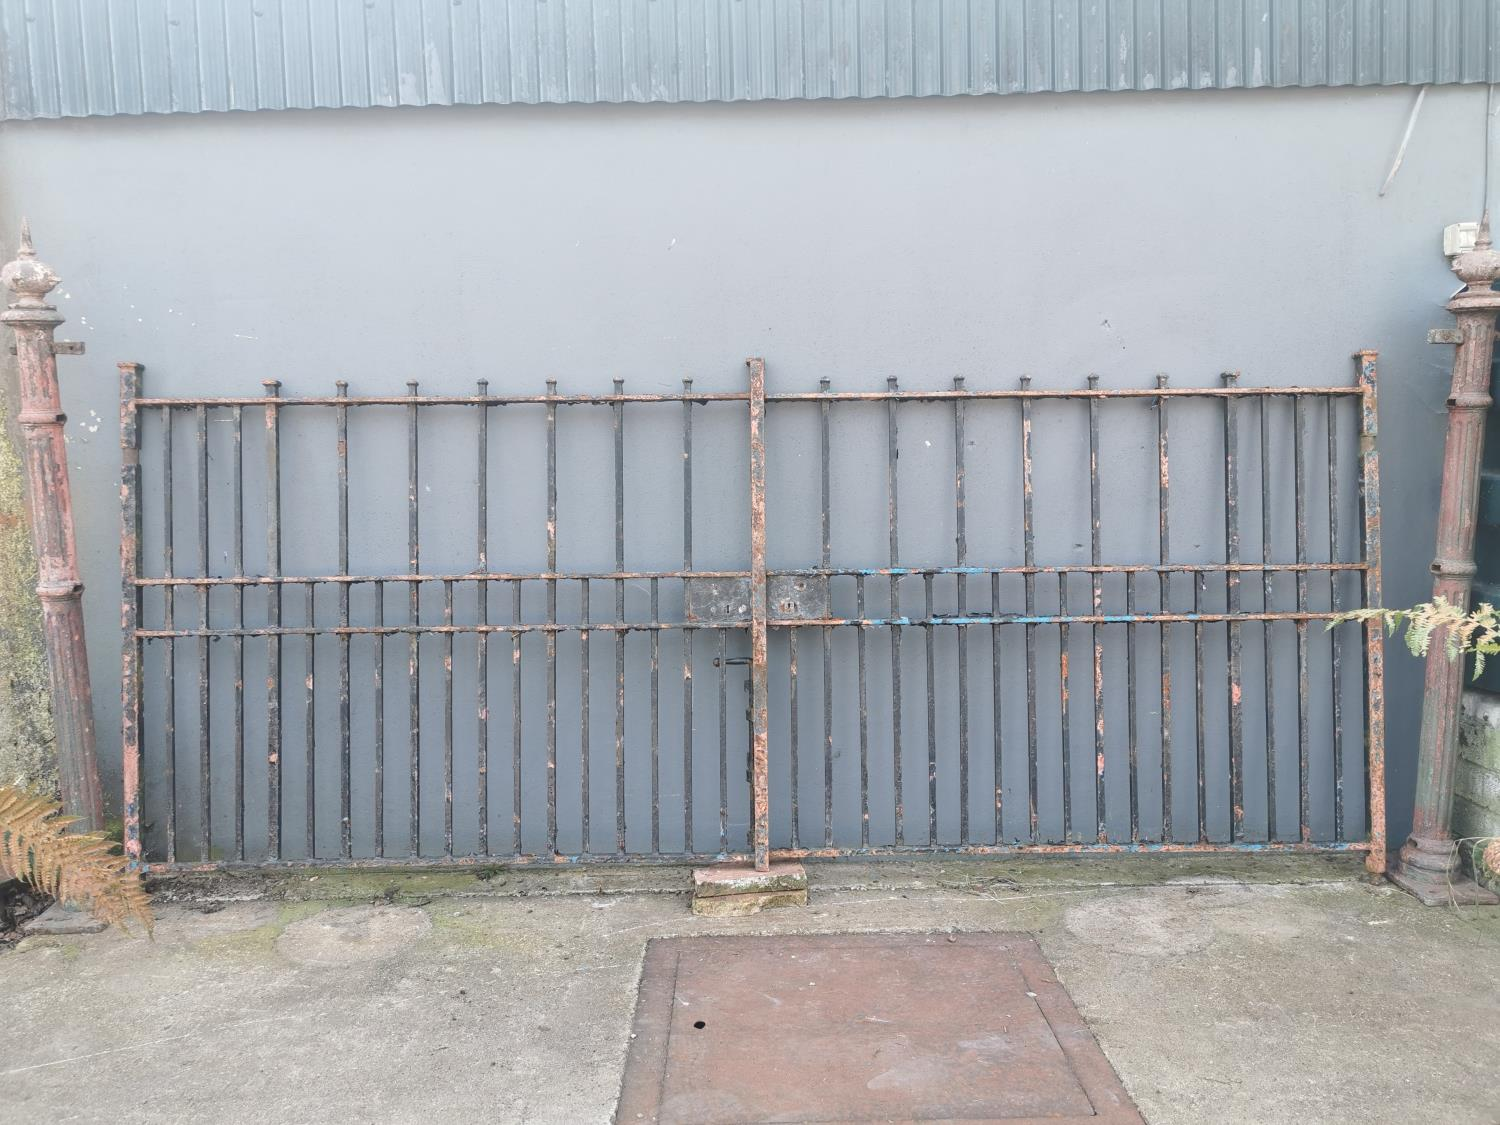 Pair of 19th C. wrought iron entrance gates